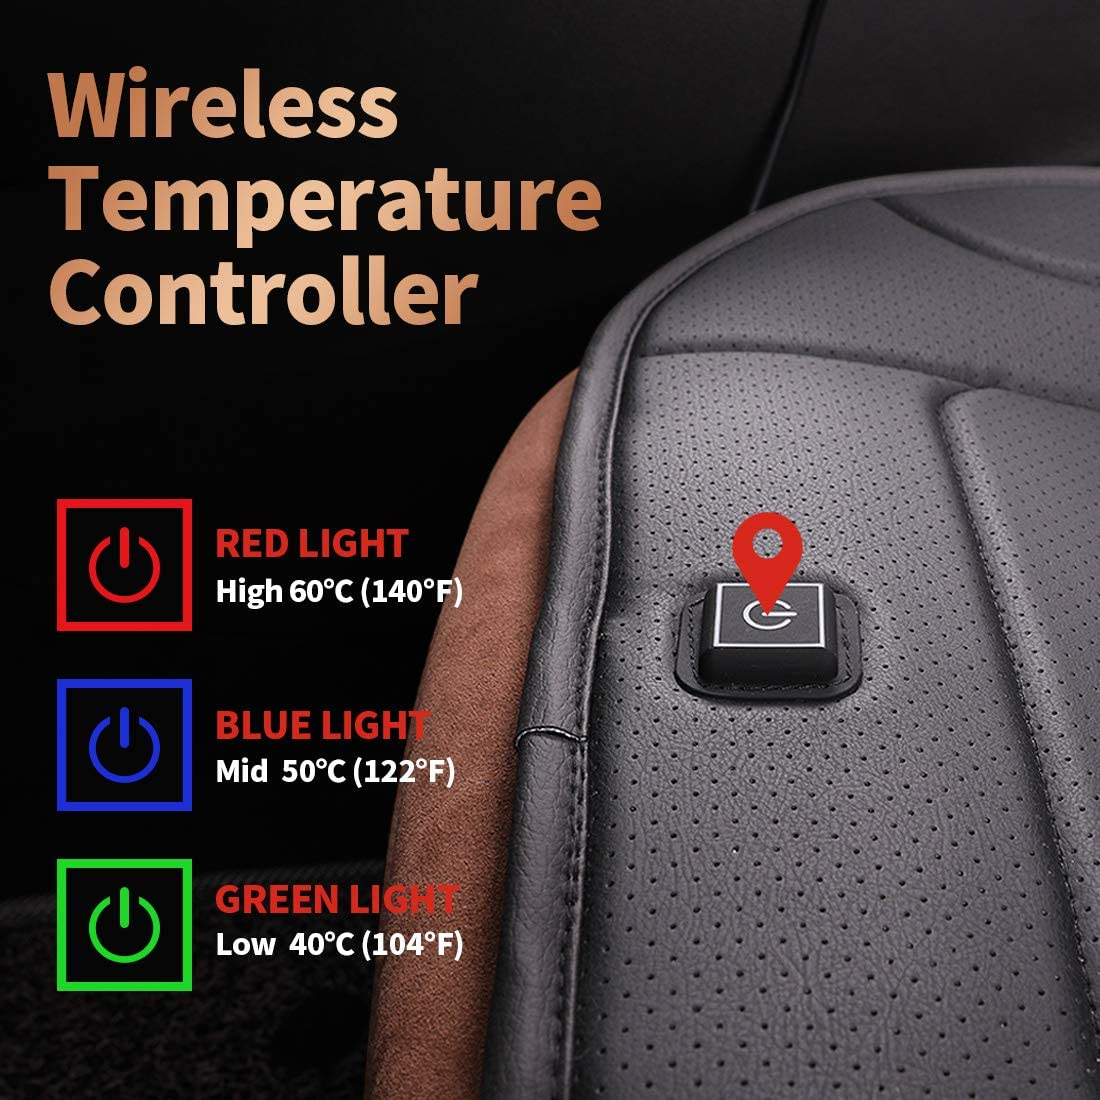 TISHIJIE Heated Car Seat Cushion with Wireless Intelligence Temperature Controller Car Seat 12V, Black Automatic Power On//Off Office Chair and Home Universal